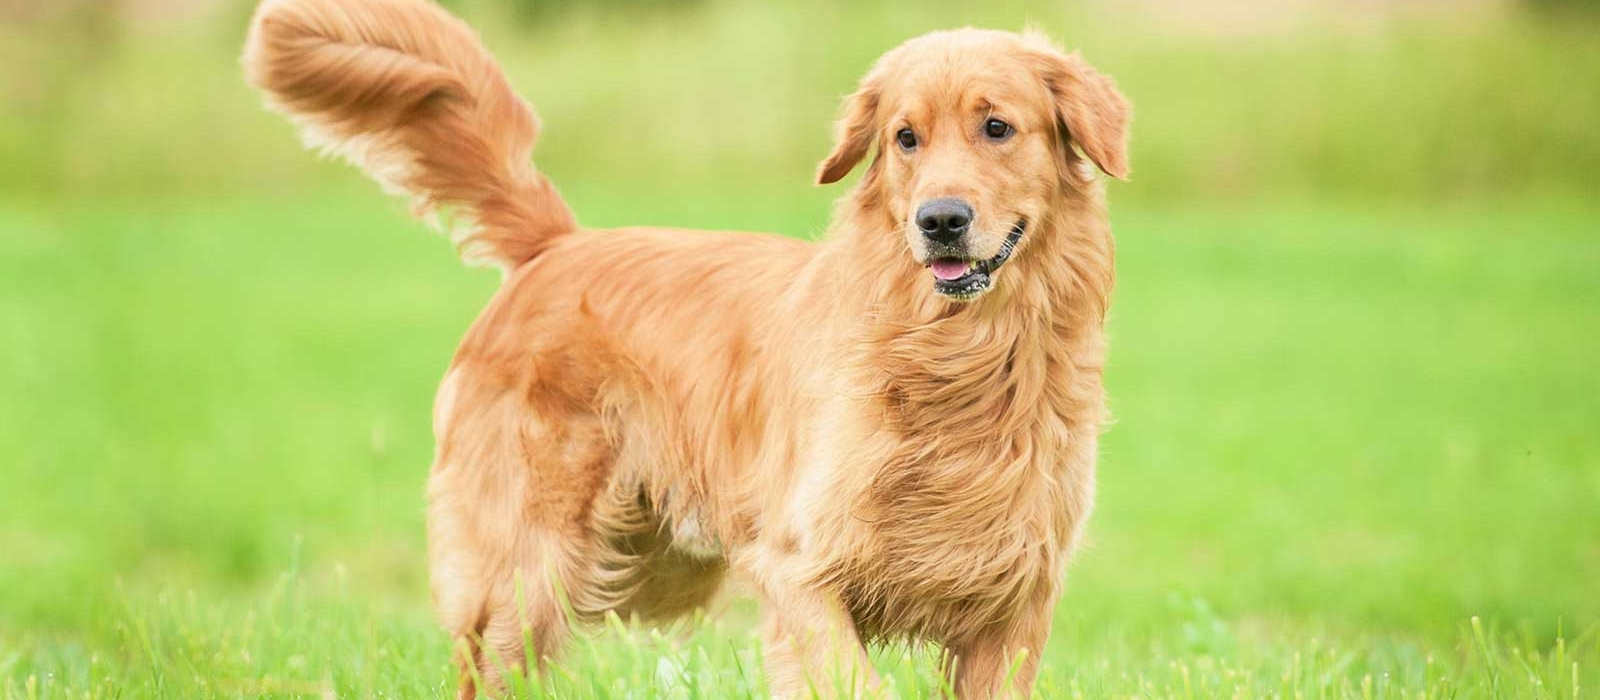 Pictures of golden retriever for sale near me cheap